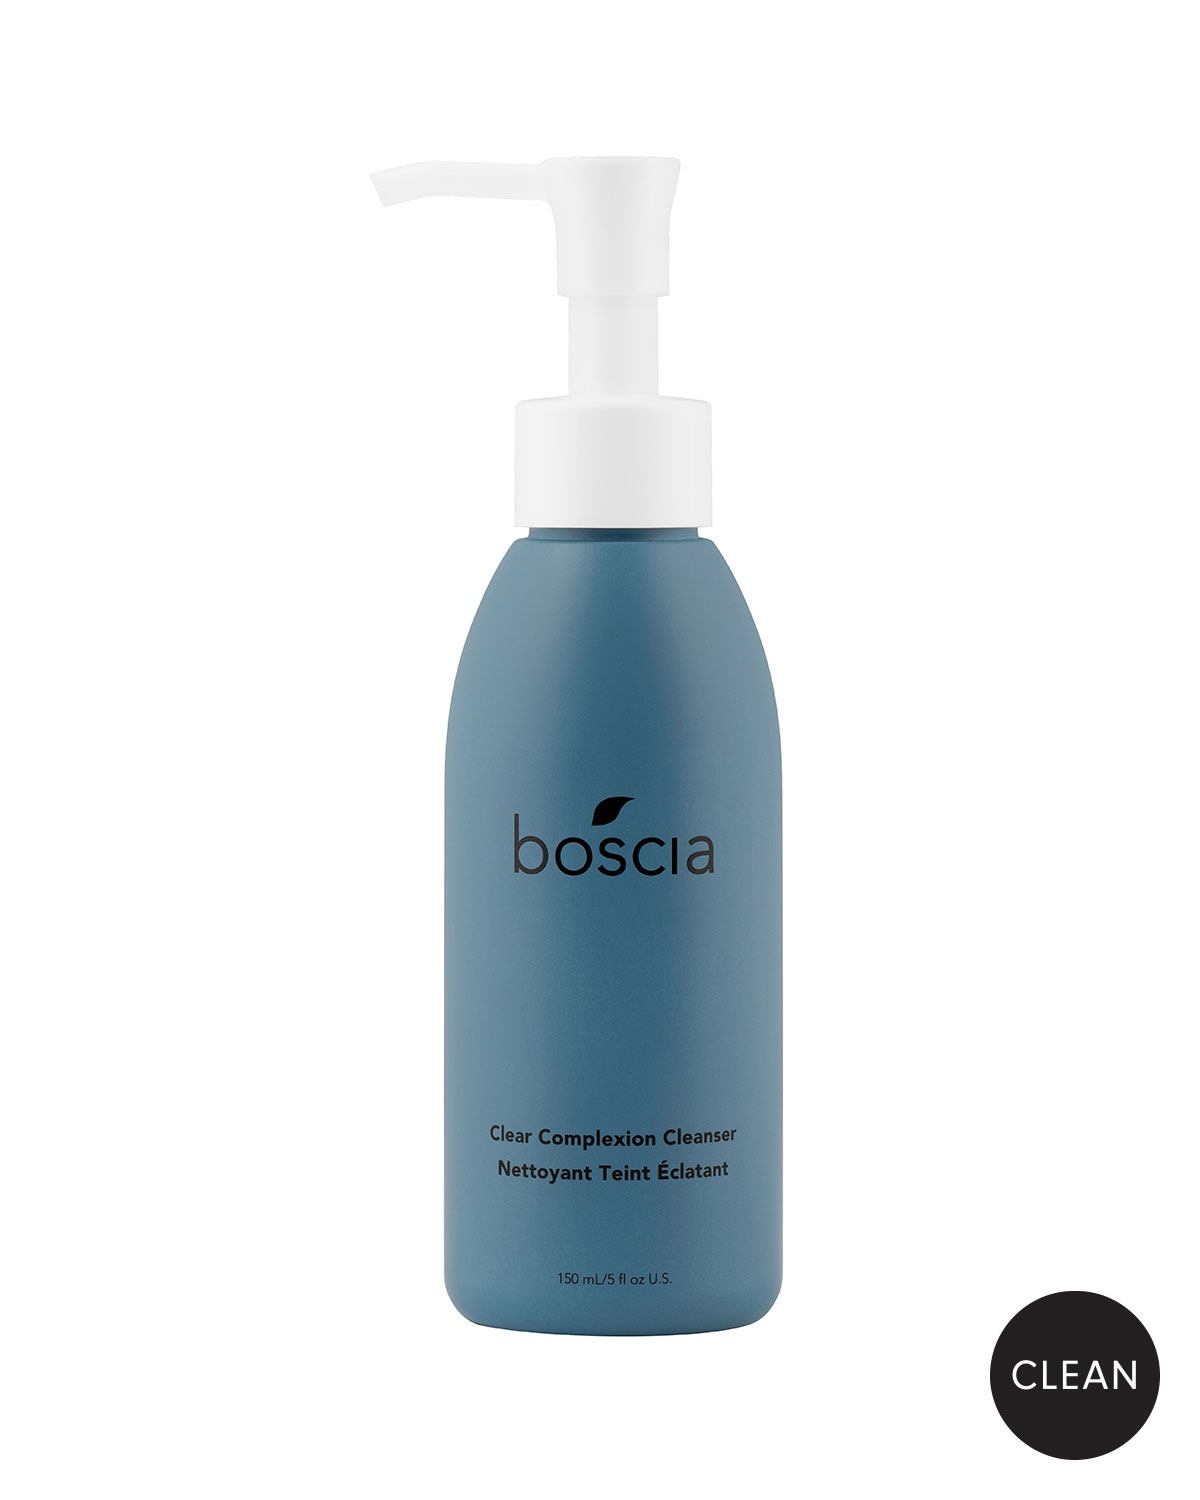 Clear Complexion Cleanser